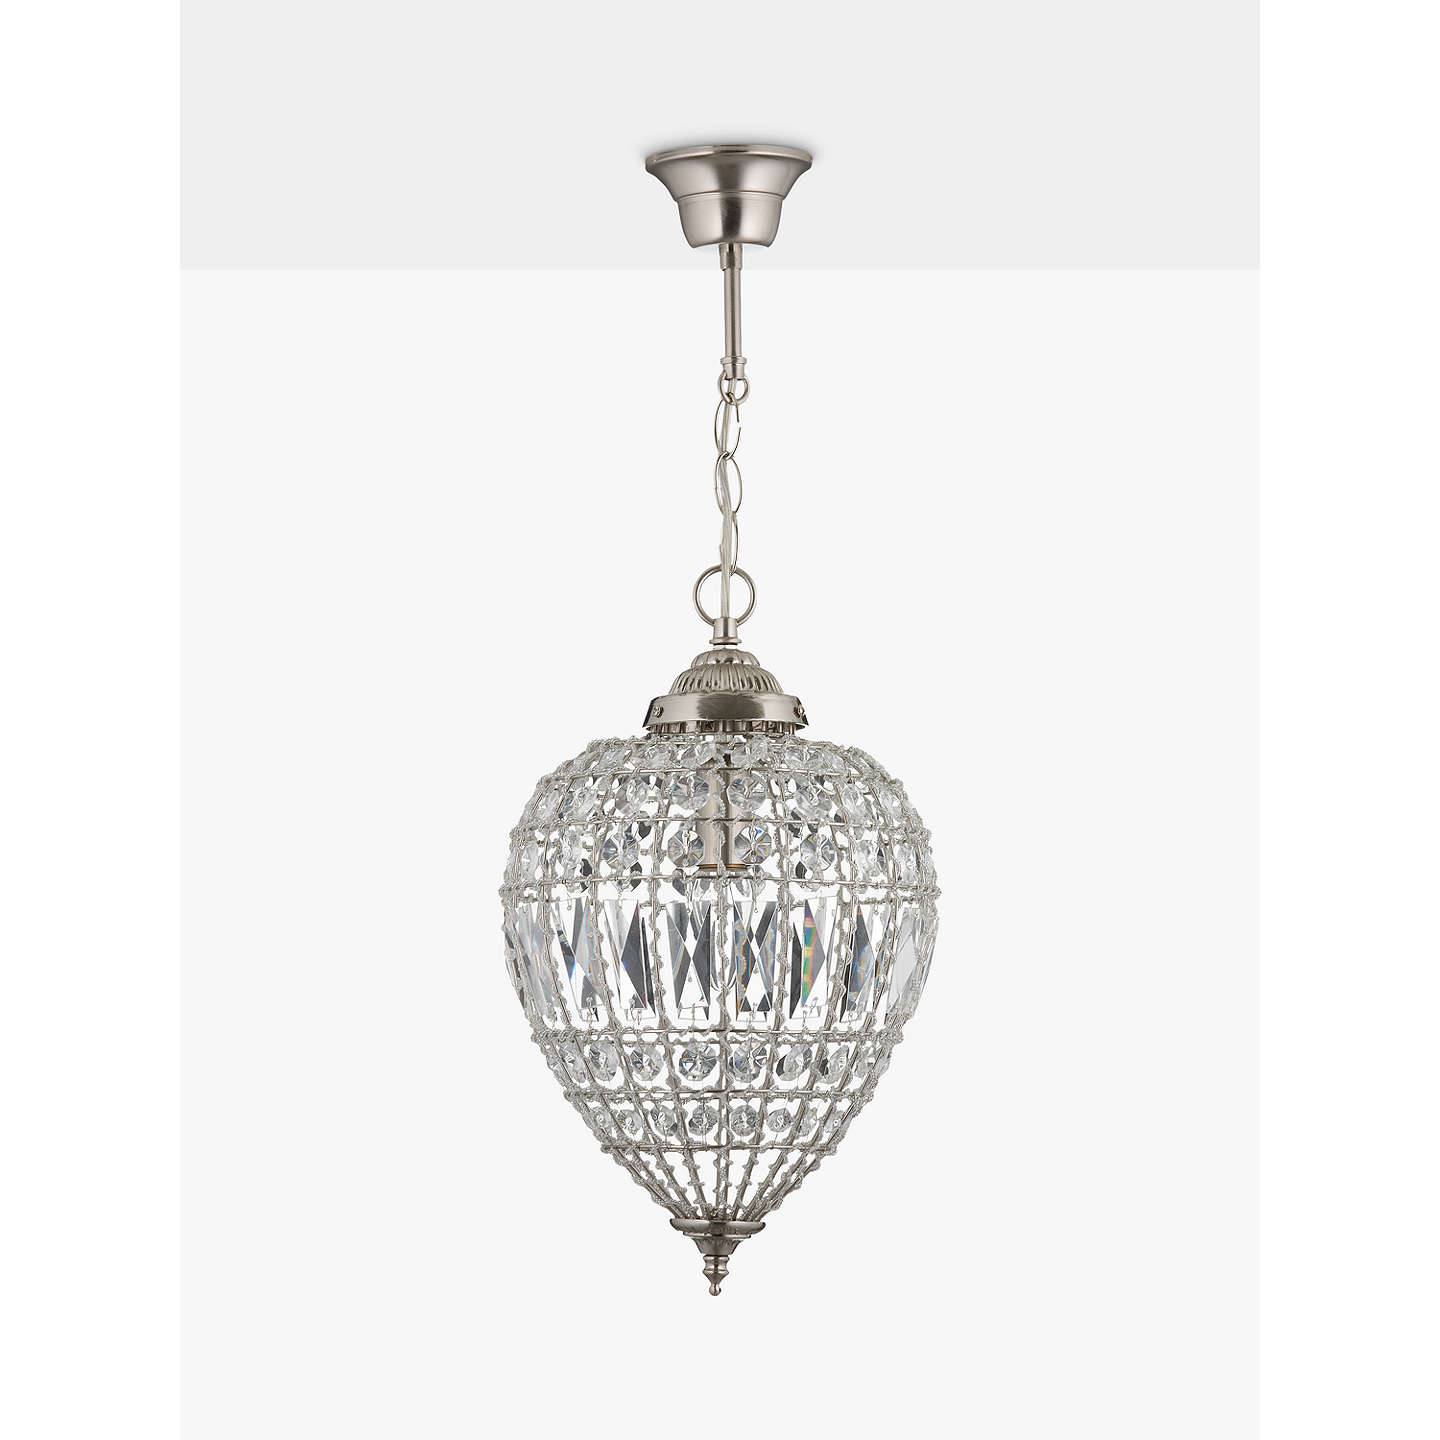 decorators linen lights shade home polished beads dangling chandelier collection drum white nickel pendant glass light with and p